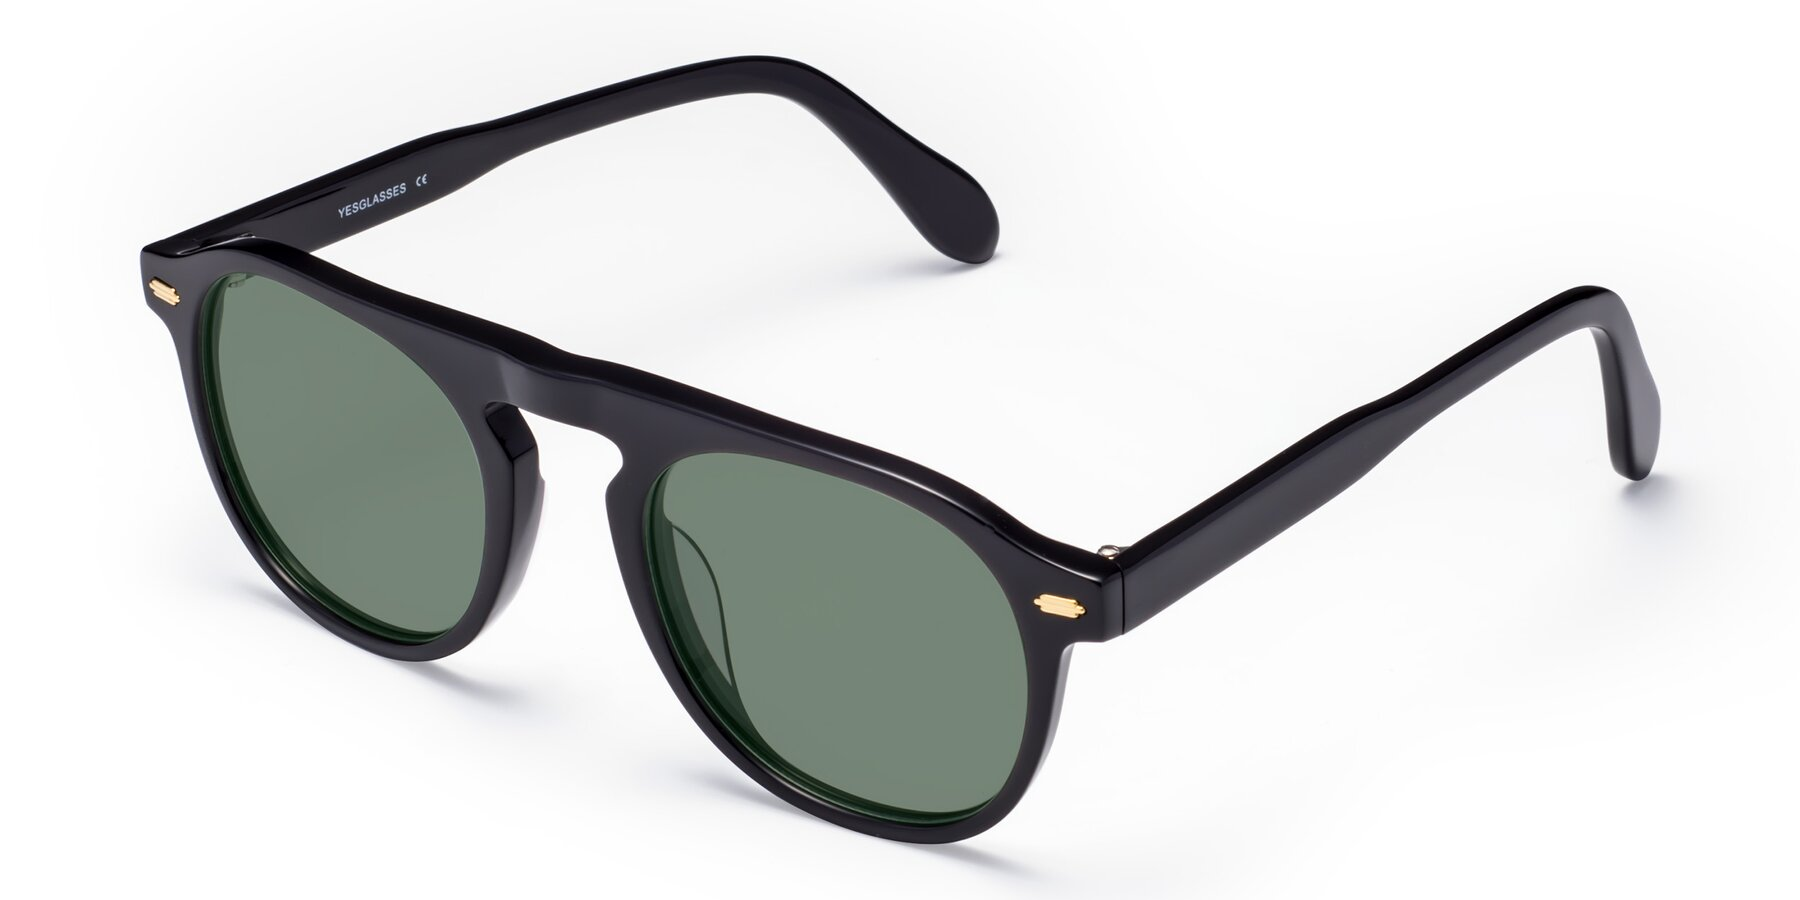 Angle of Mufasa in Black with Medium Green Tinted Lenses